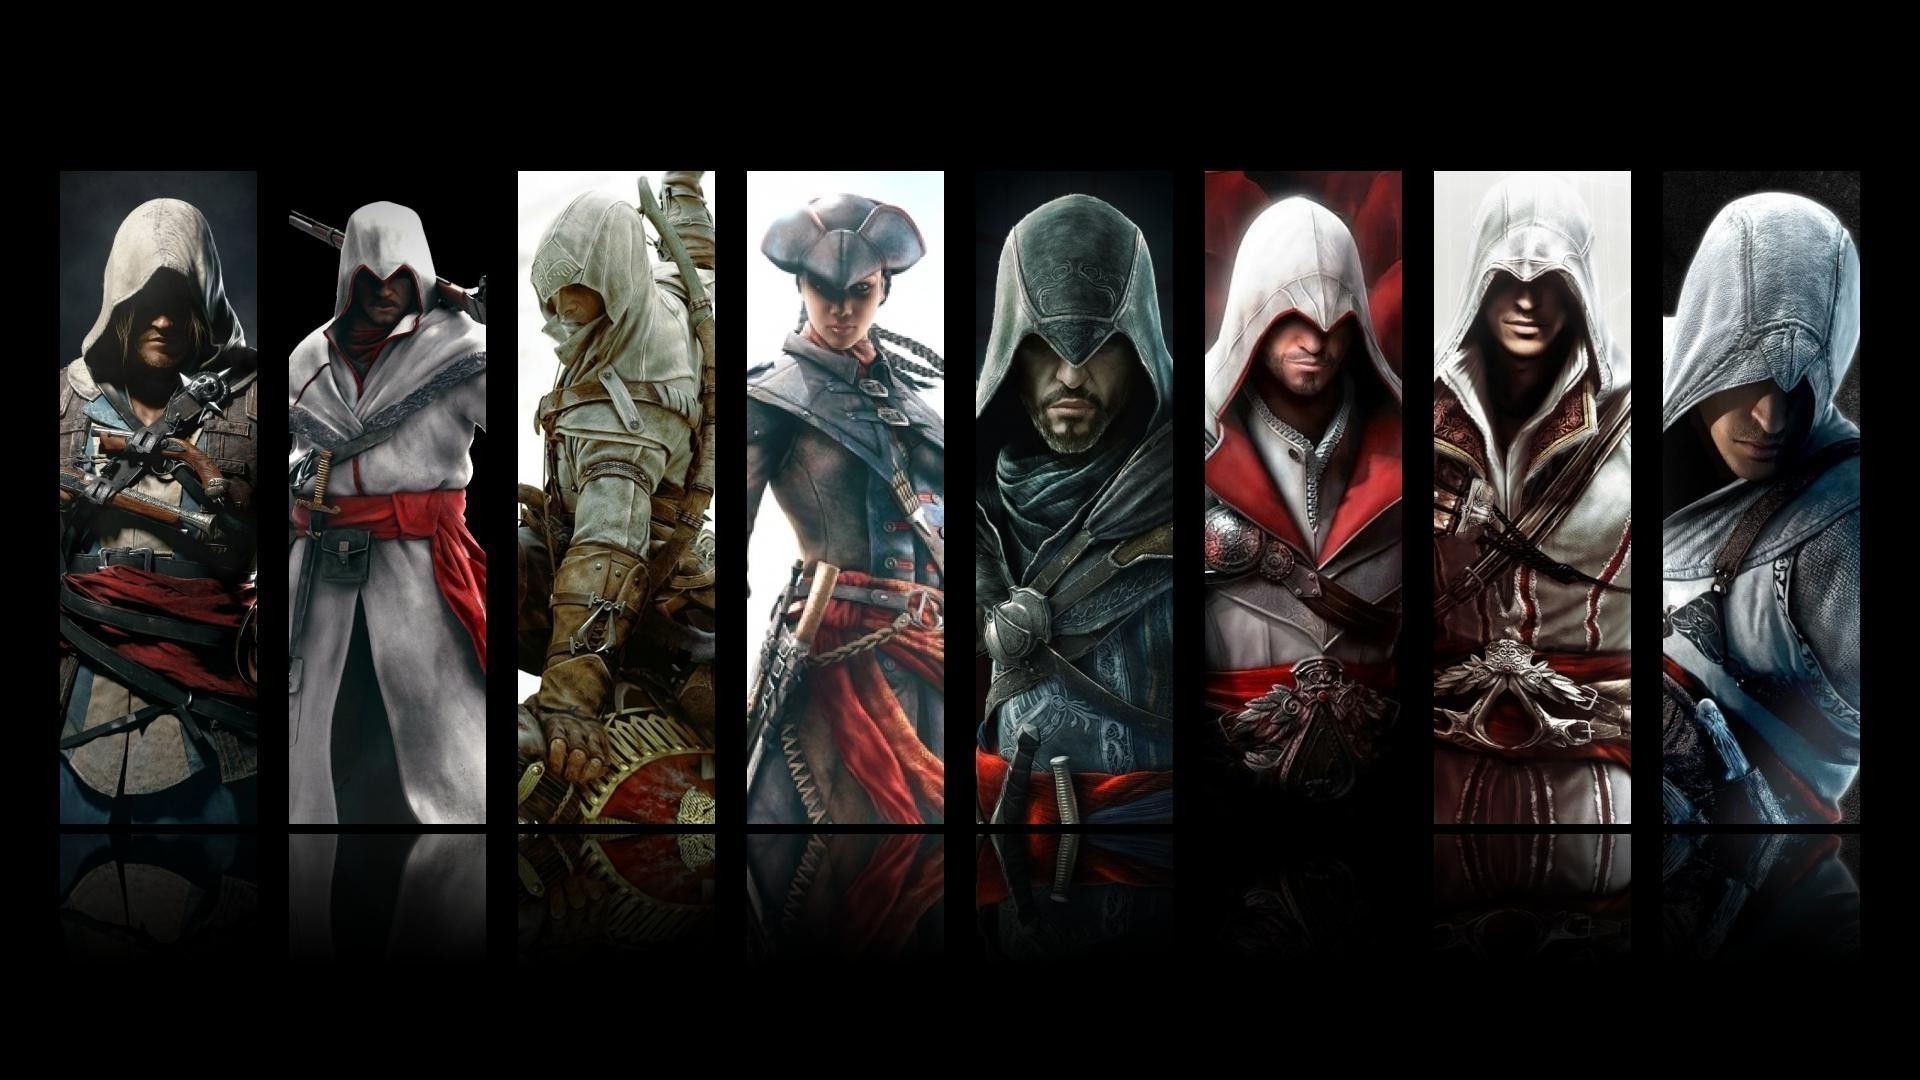 How assassins creed is changing mens fashion